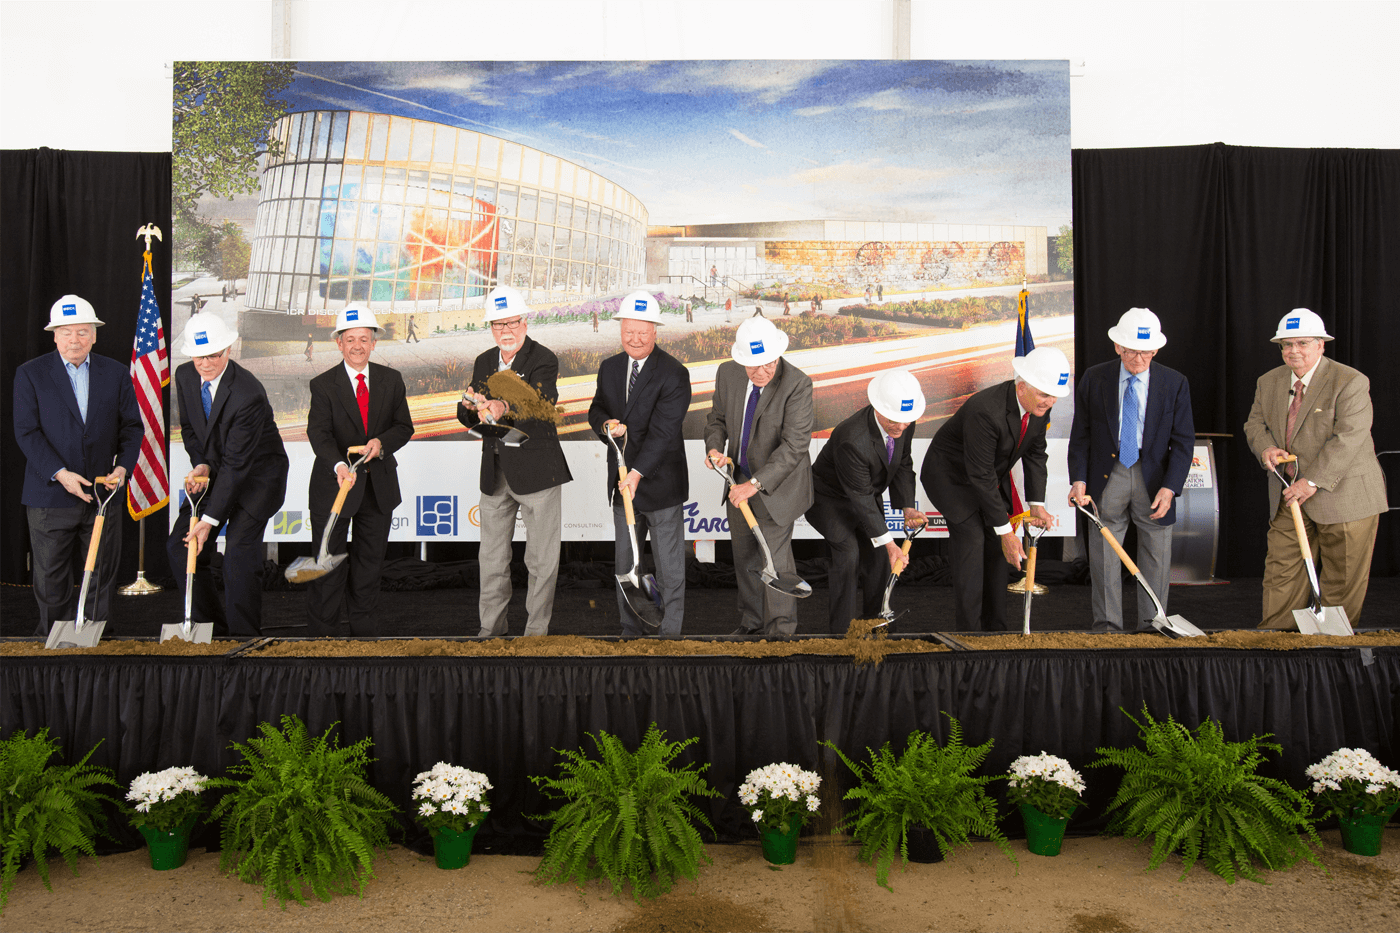 The groundbreaking ceremony for the ICR Discovery Center